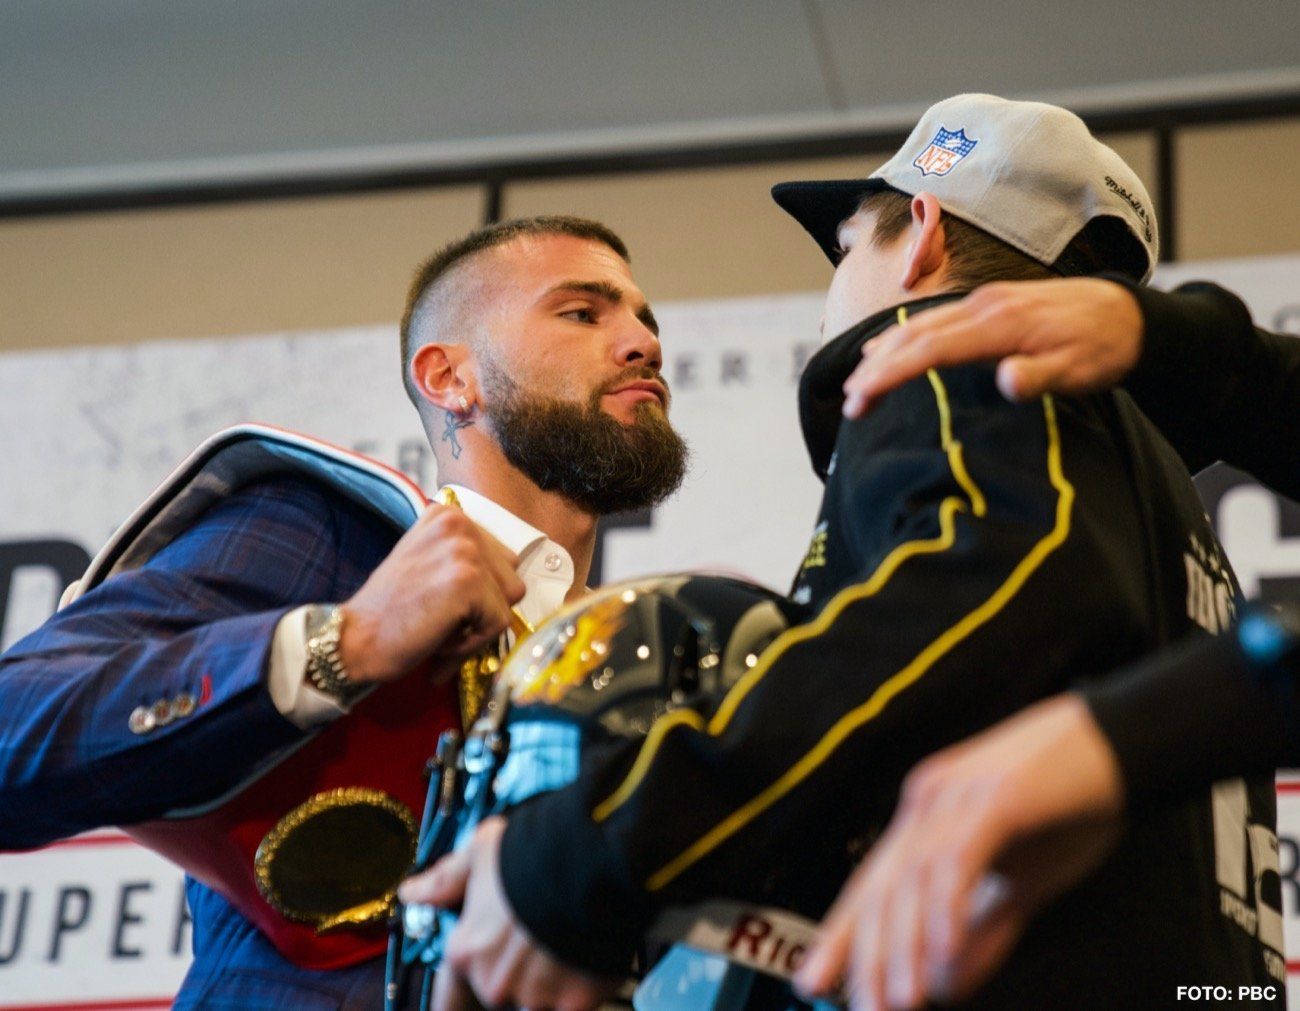 Caleb Plant - The 'KO King' Vincent Feigenbutz (31-2, 28 KOs) came face to face with Caleb Plant (19-0, 11 KOs) for the first time at Thursday's press conference ahead of their IBF Super Middleweight World title fight this Saturday night at the Bridgestone Arena in Nashville, Tennessee.